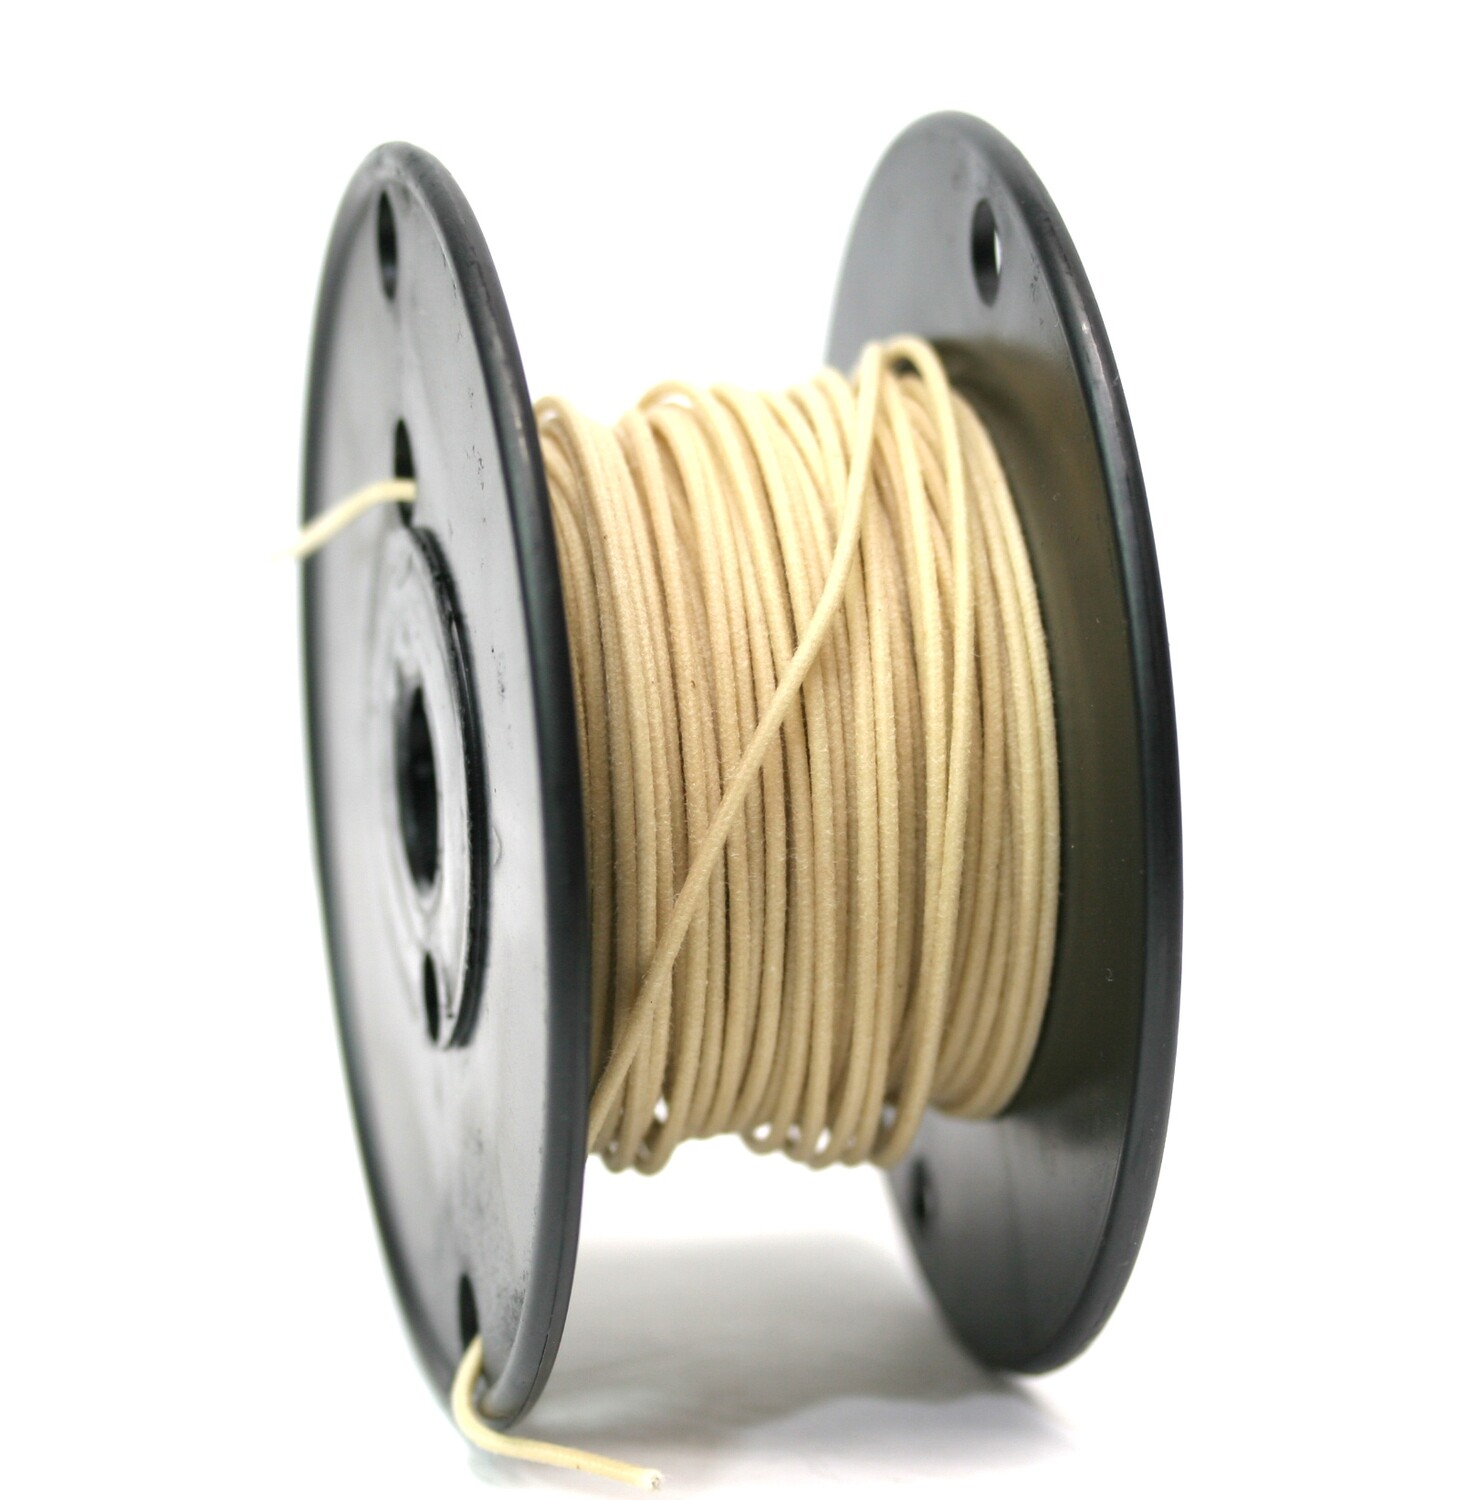 1 foot Premium USA Vintage Stranded Core Push-back Cloth Wire White